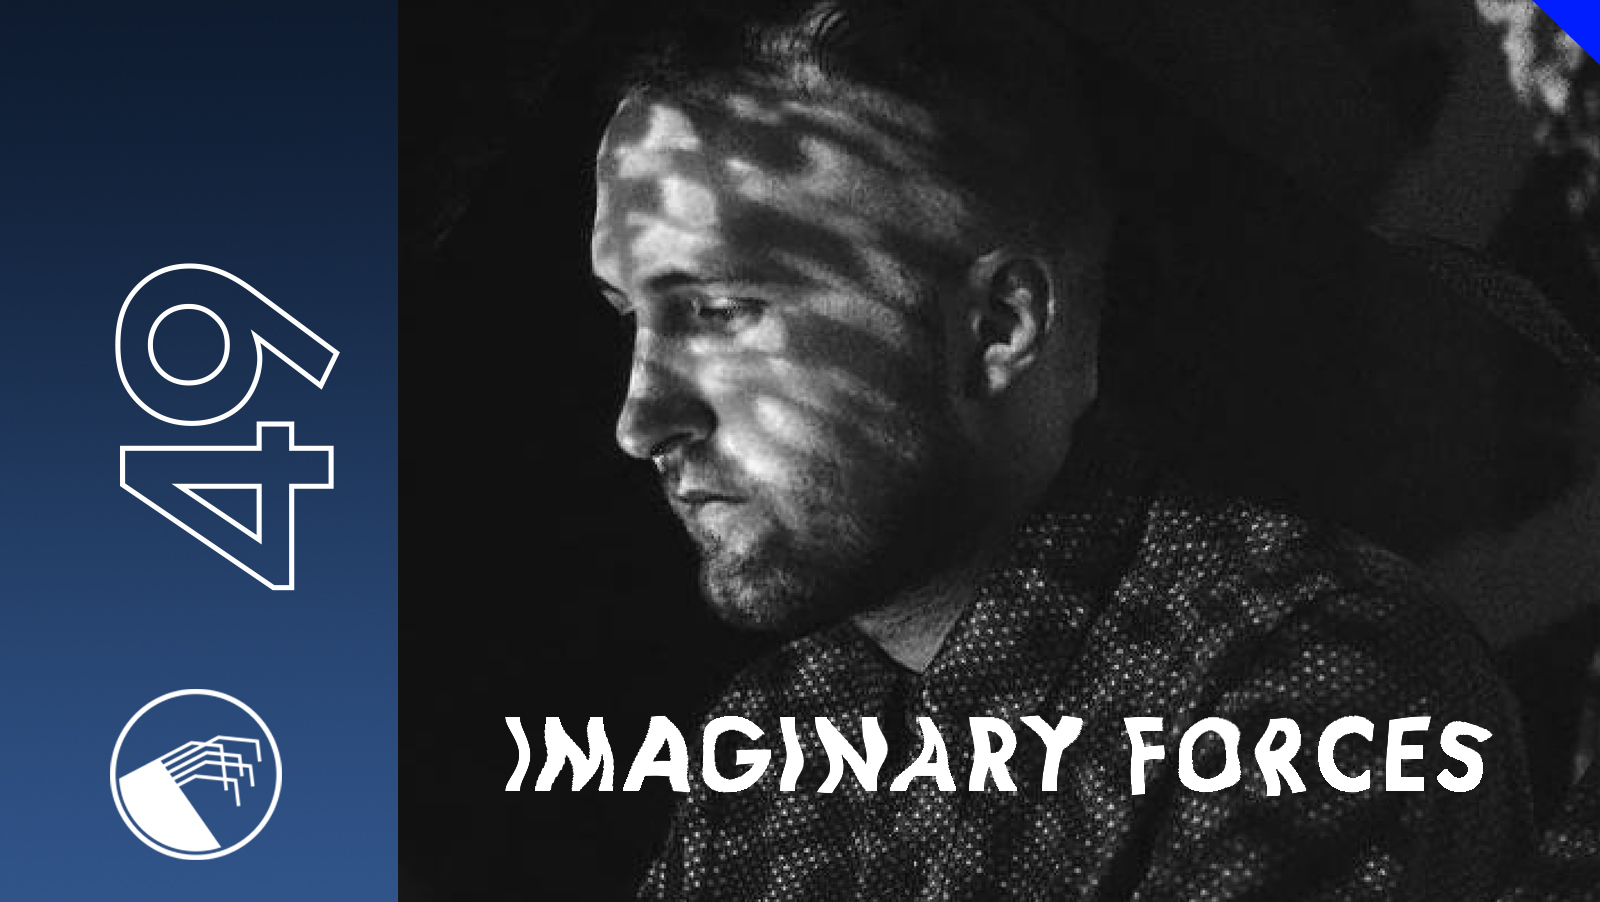 049 Imaginary Forces